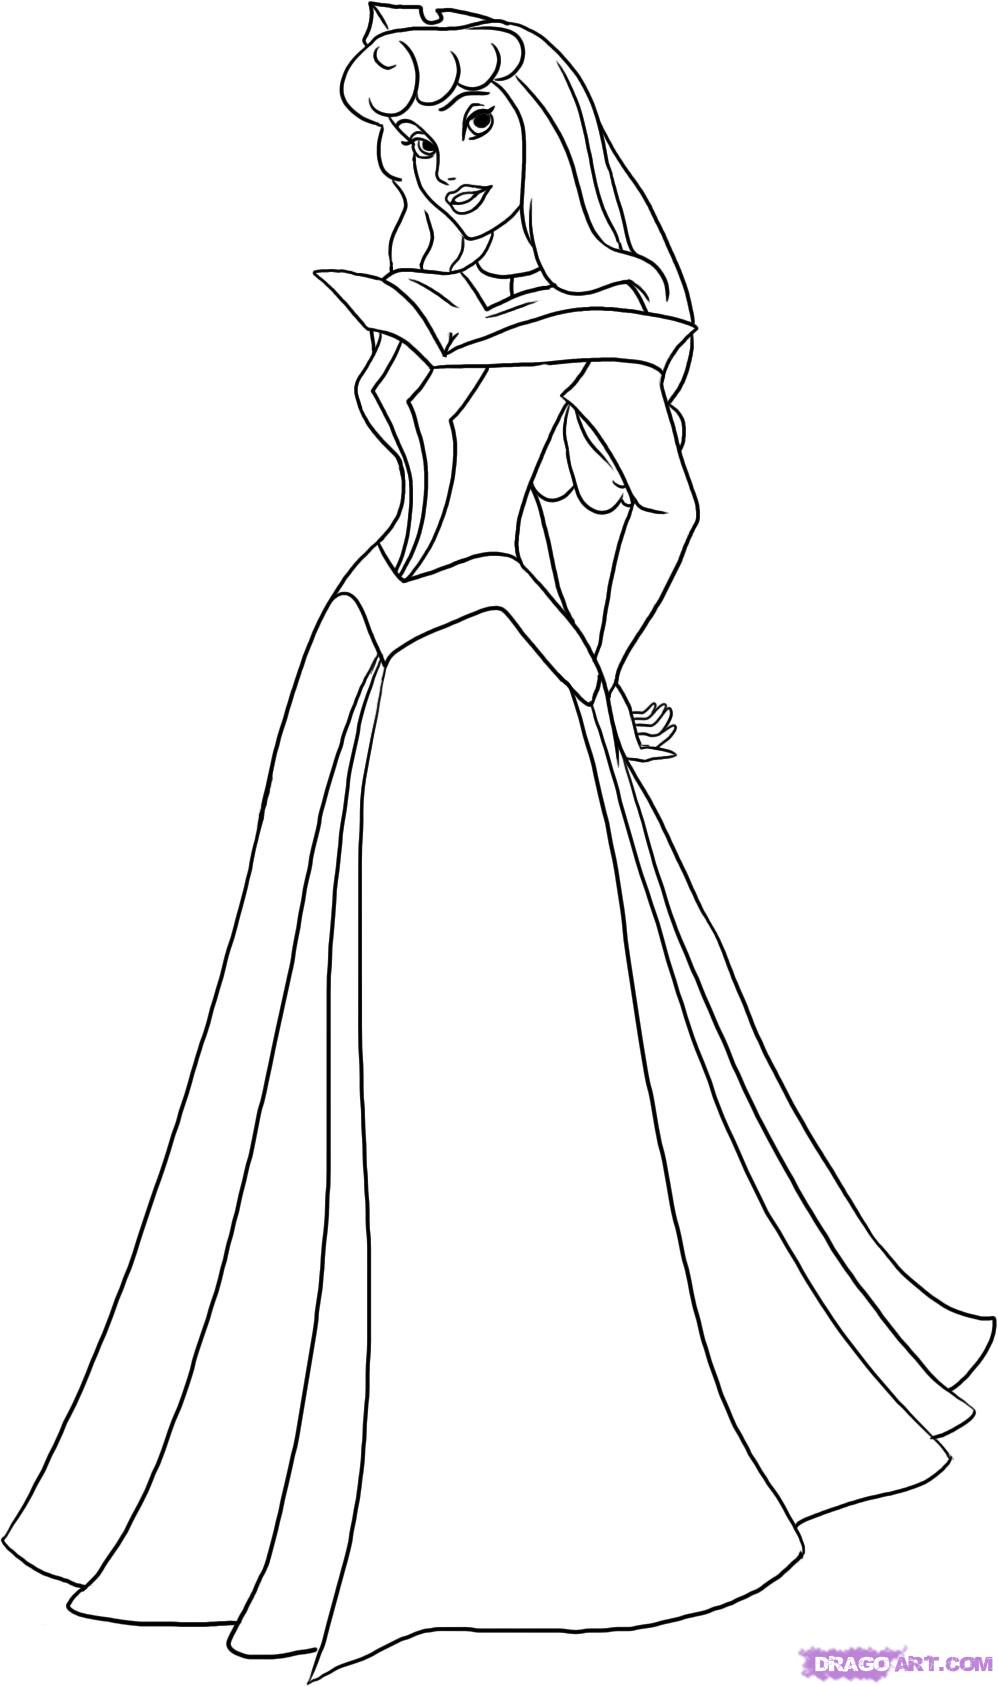 Princess Outline Drawing At Getdrawingscom  Free For Personal Use